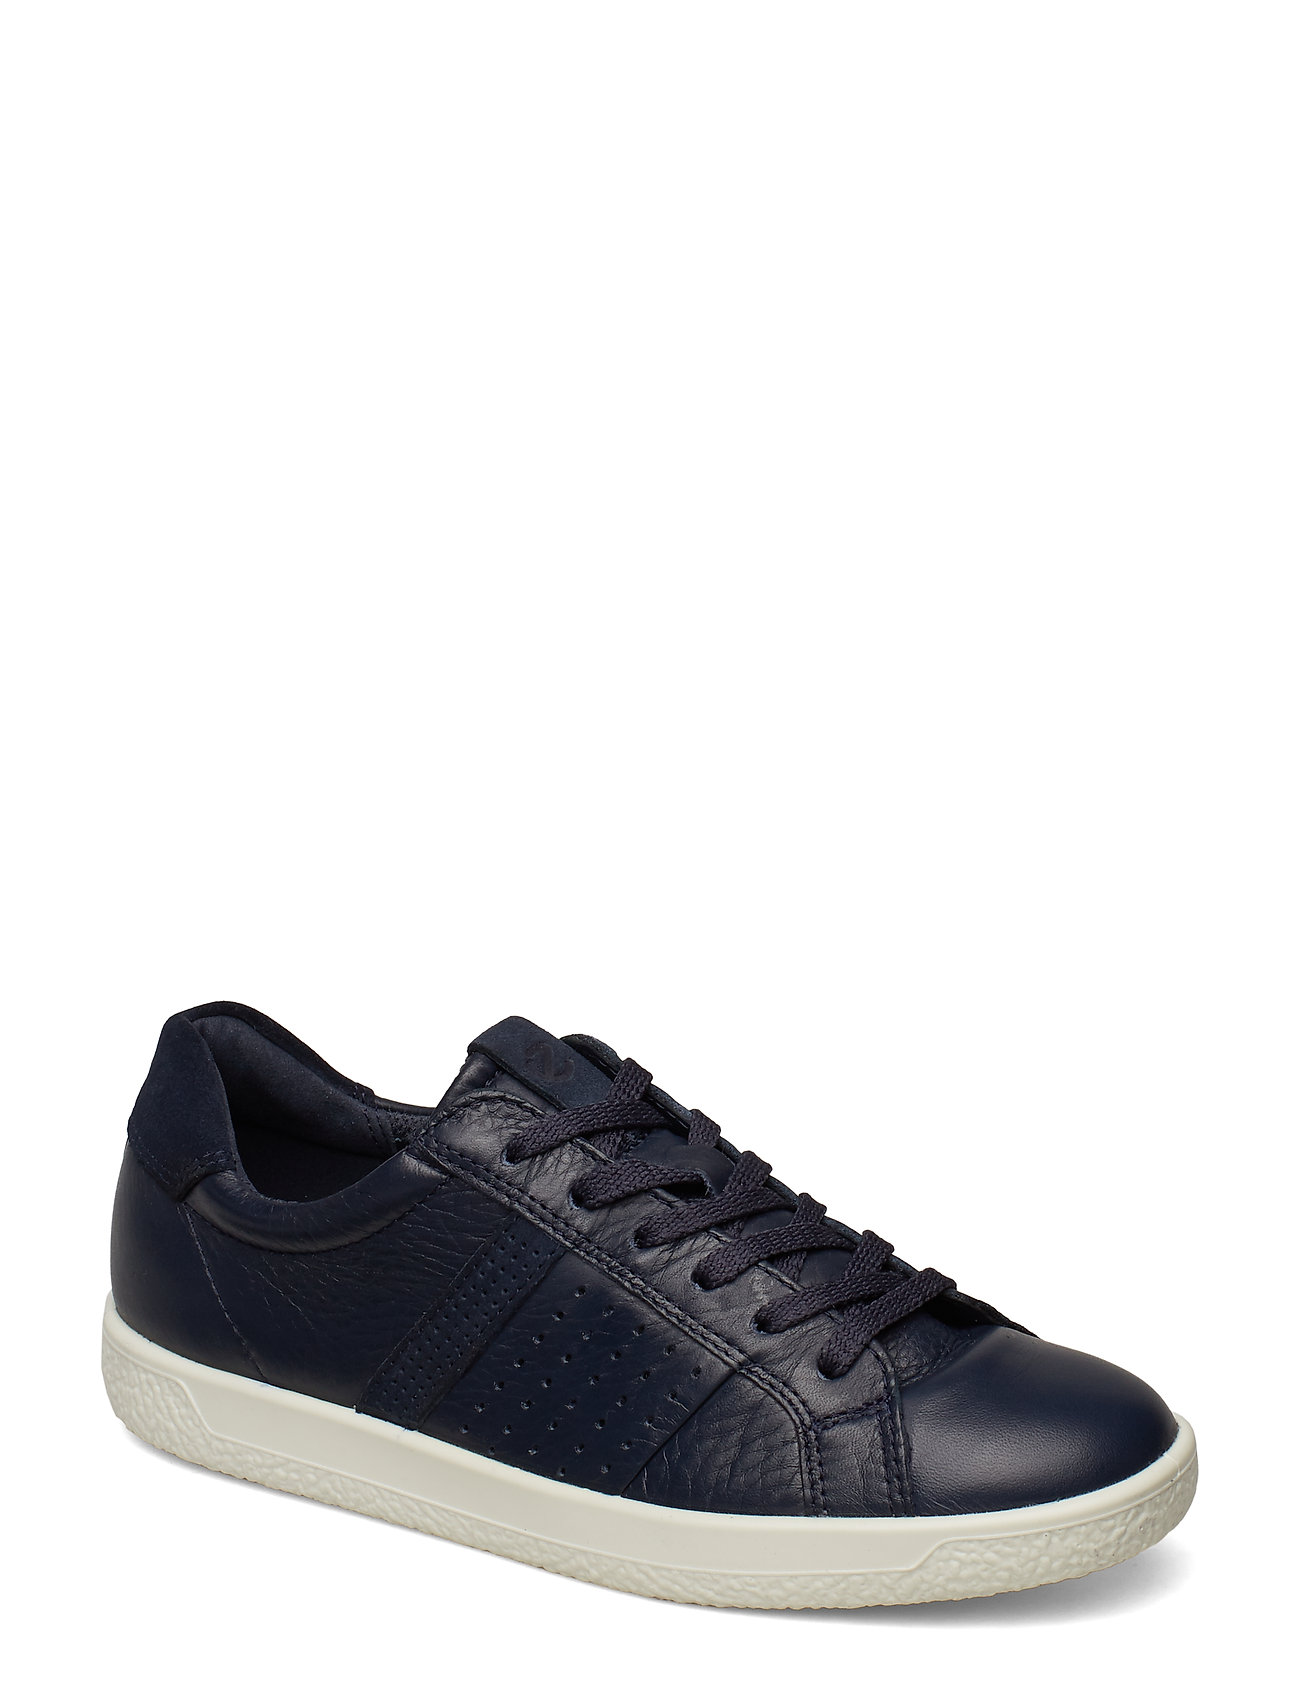 Image of Soft 1 W Low-top Sneakers Blå ECCO (3196659577)